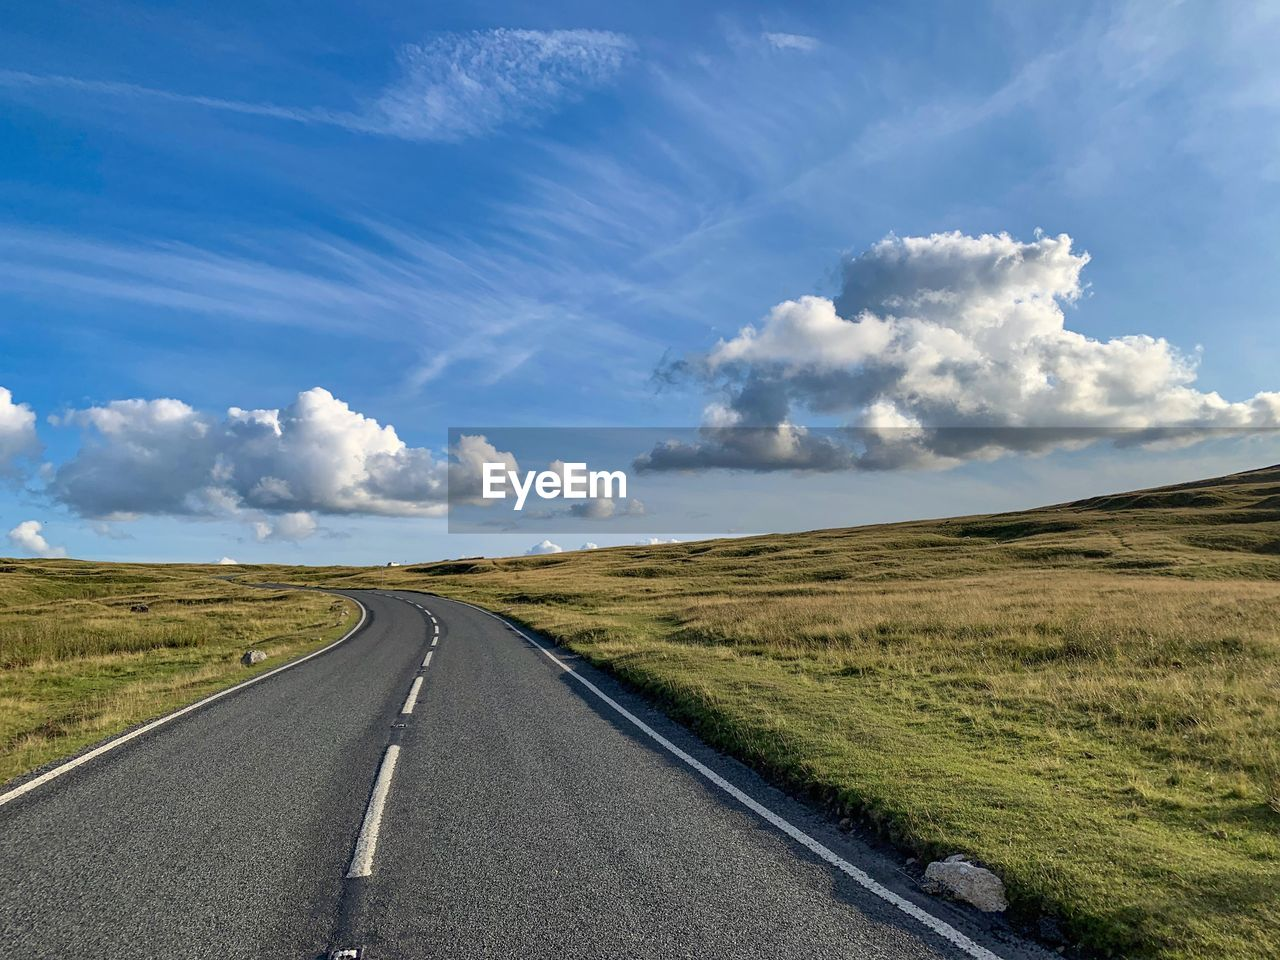 sky, road, cloud - sky, transportation, tranquil scene, nature, the way forward, landscape, land, direction, environment, day, field, beauty in nature, tranquility, scenics - nature, non-urban scene, no people, grass, horizon, diminishing perspective, outdoors, dividing line, long